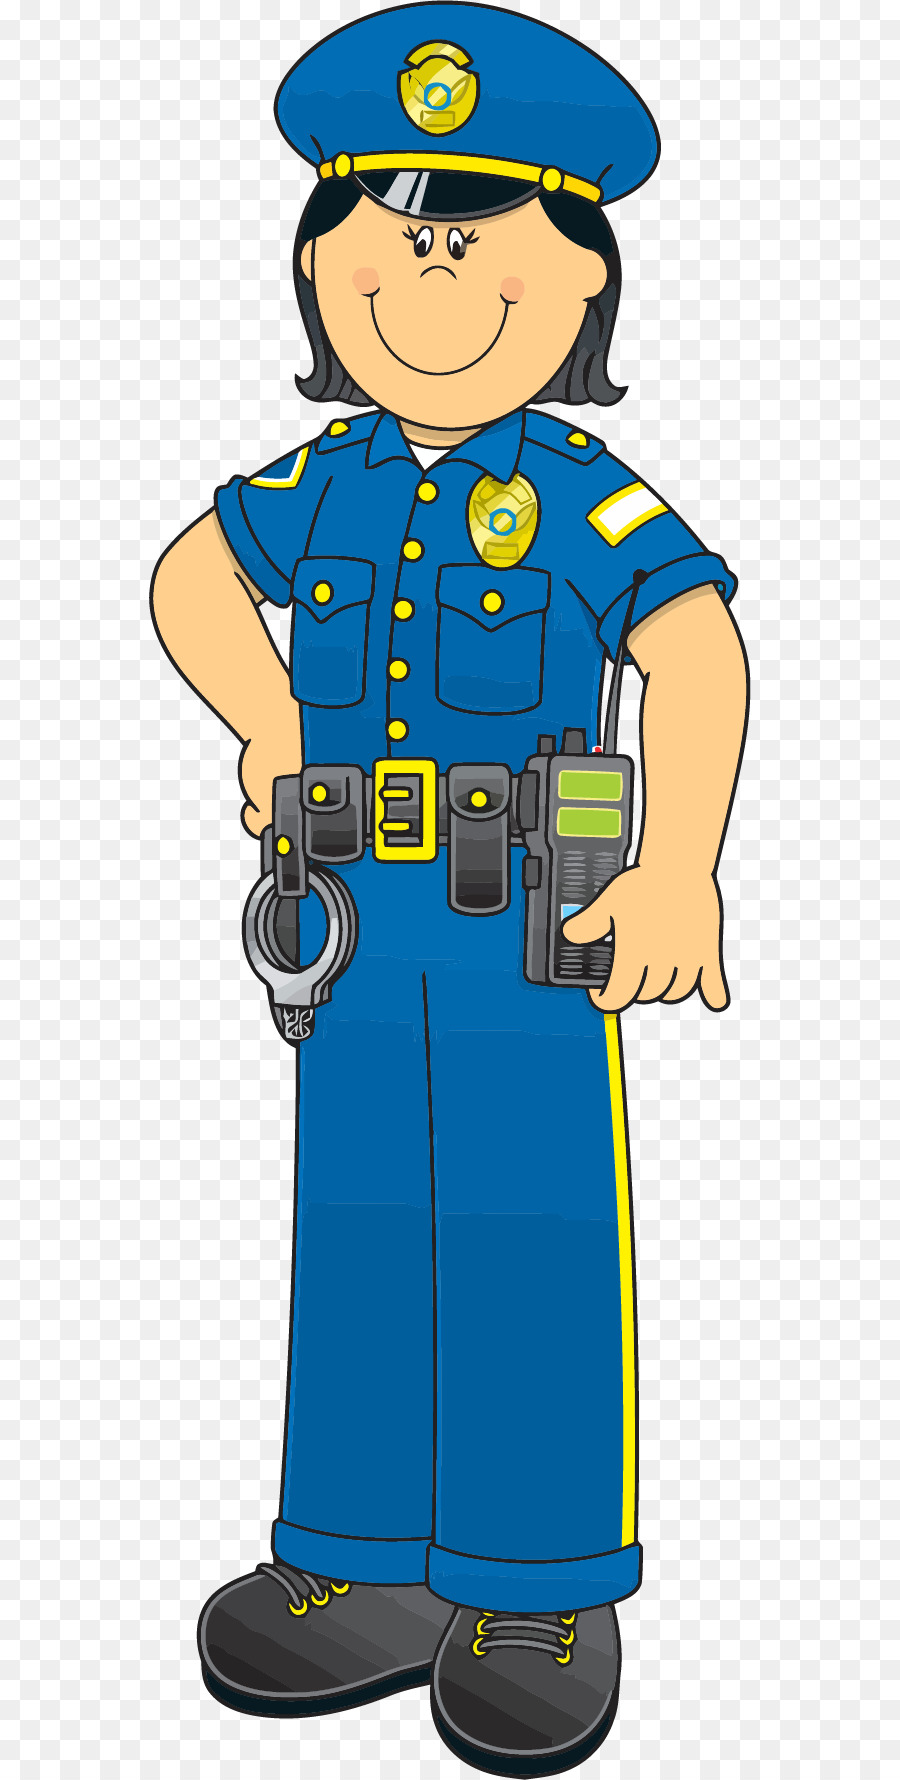 Police Officer Cartoontransparent png image & clipart free download.